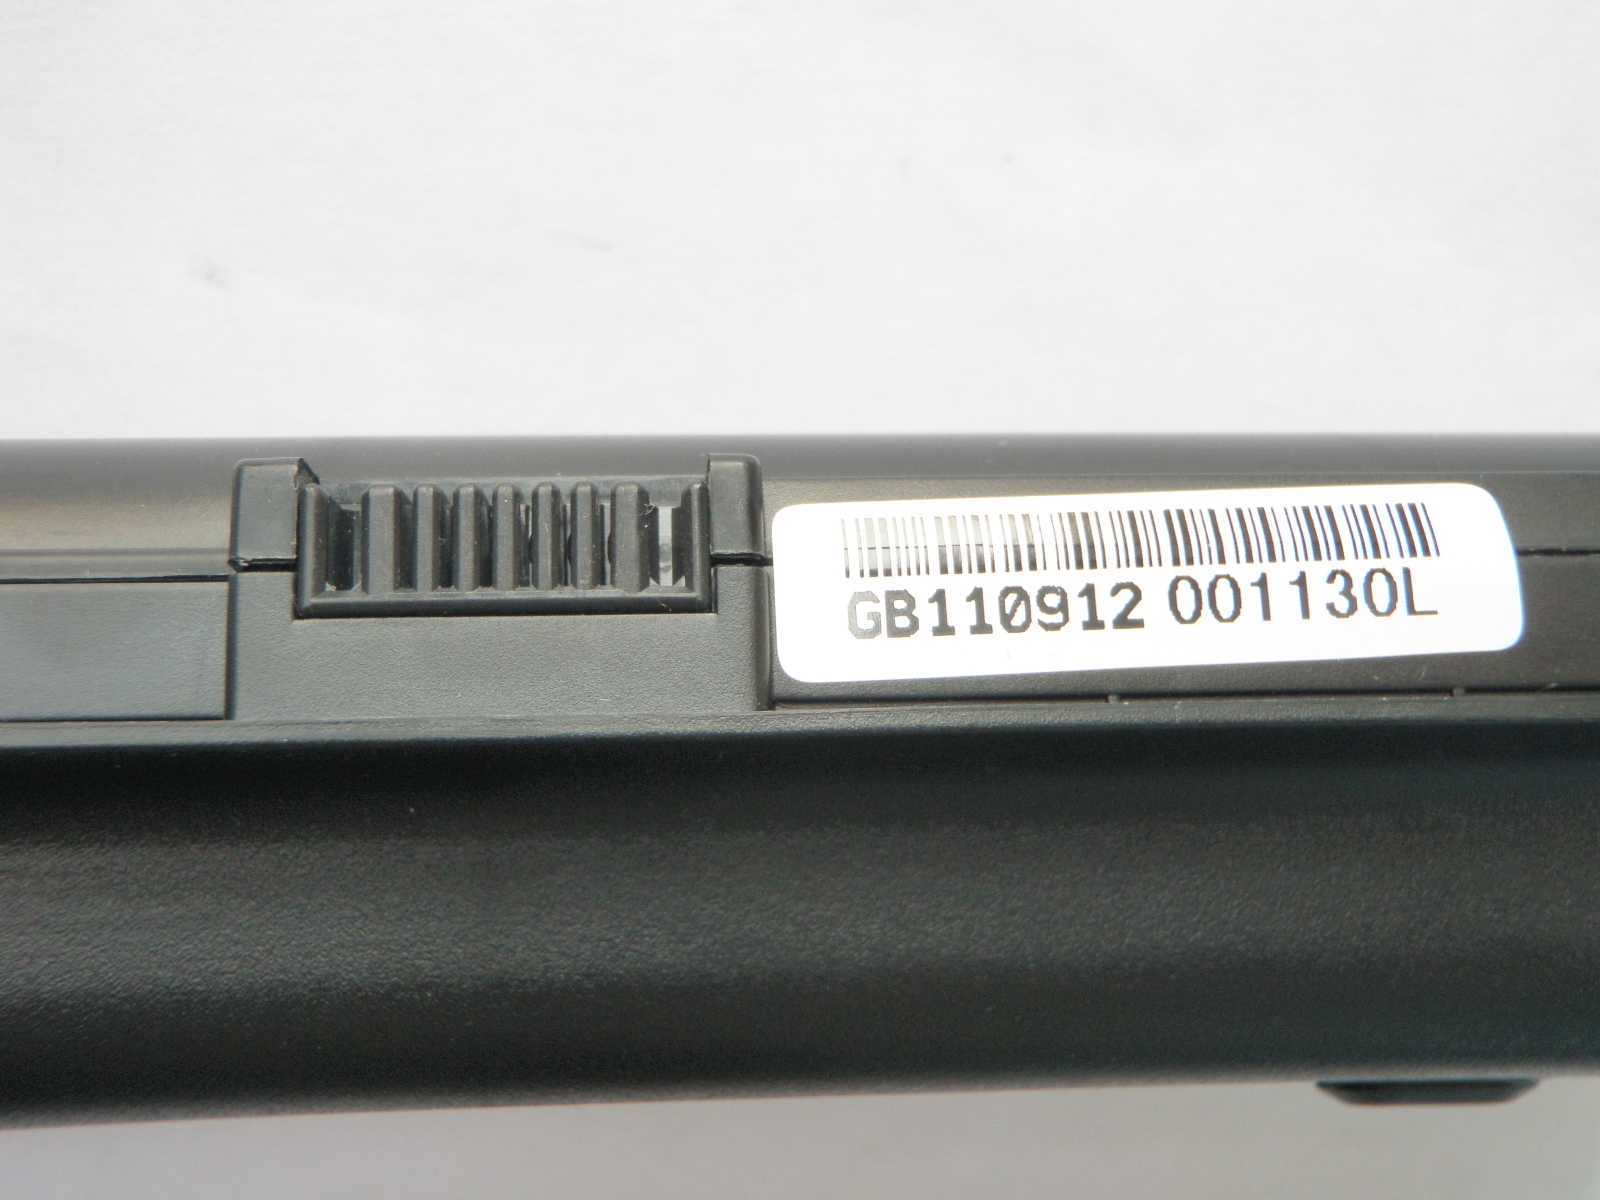 441425-001 HSTNN-LB42 Laptop Battery for HP Pavilion DV3000 DV2000 DV6000